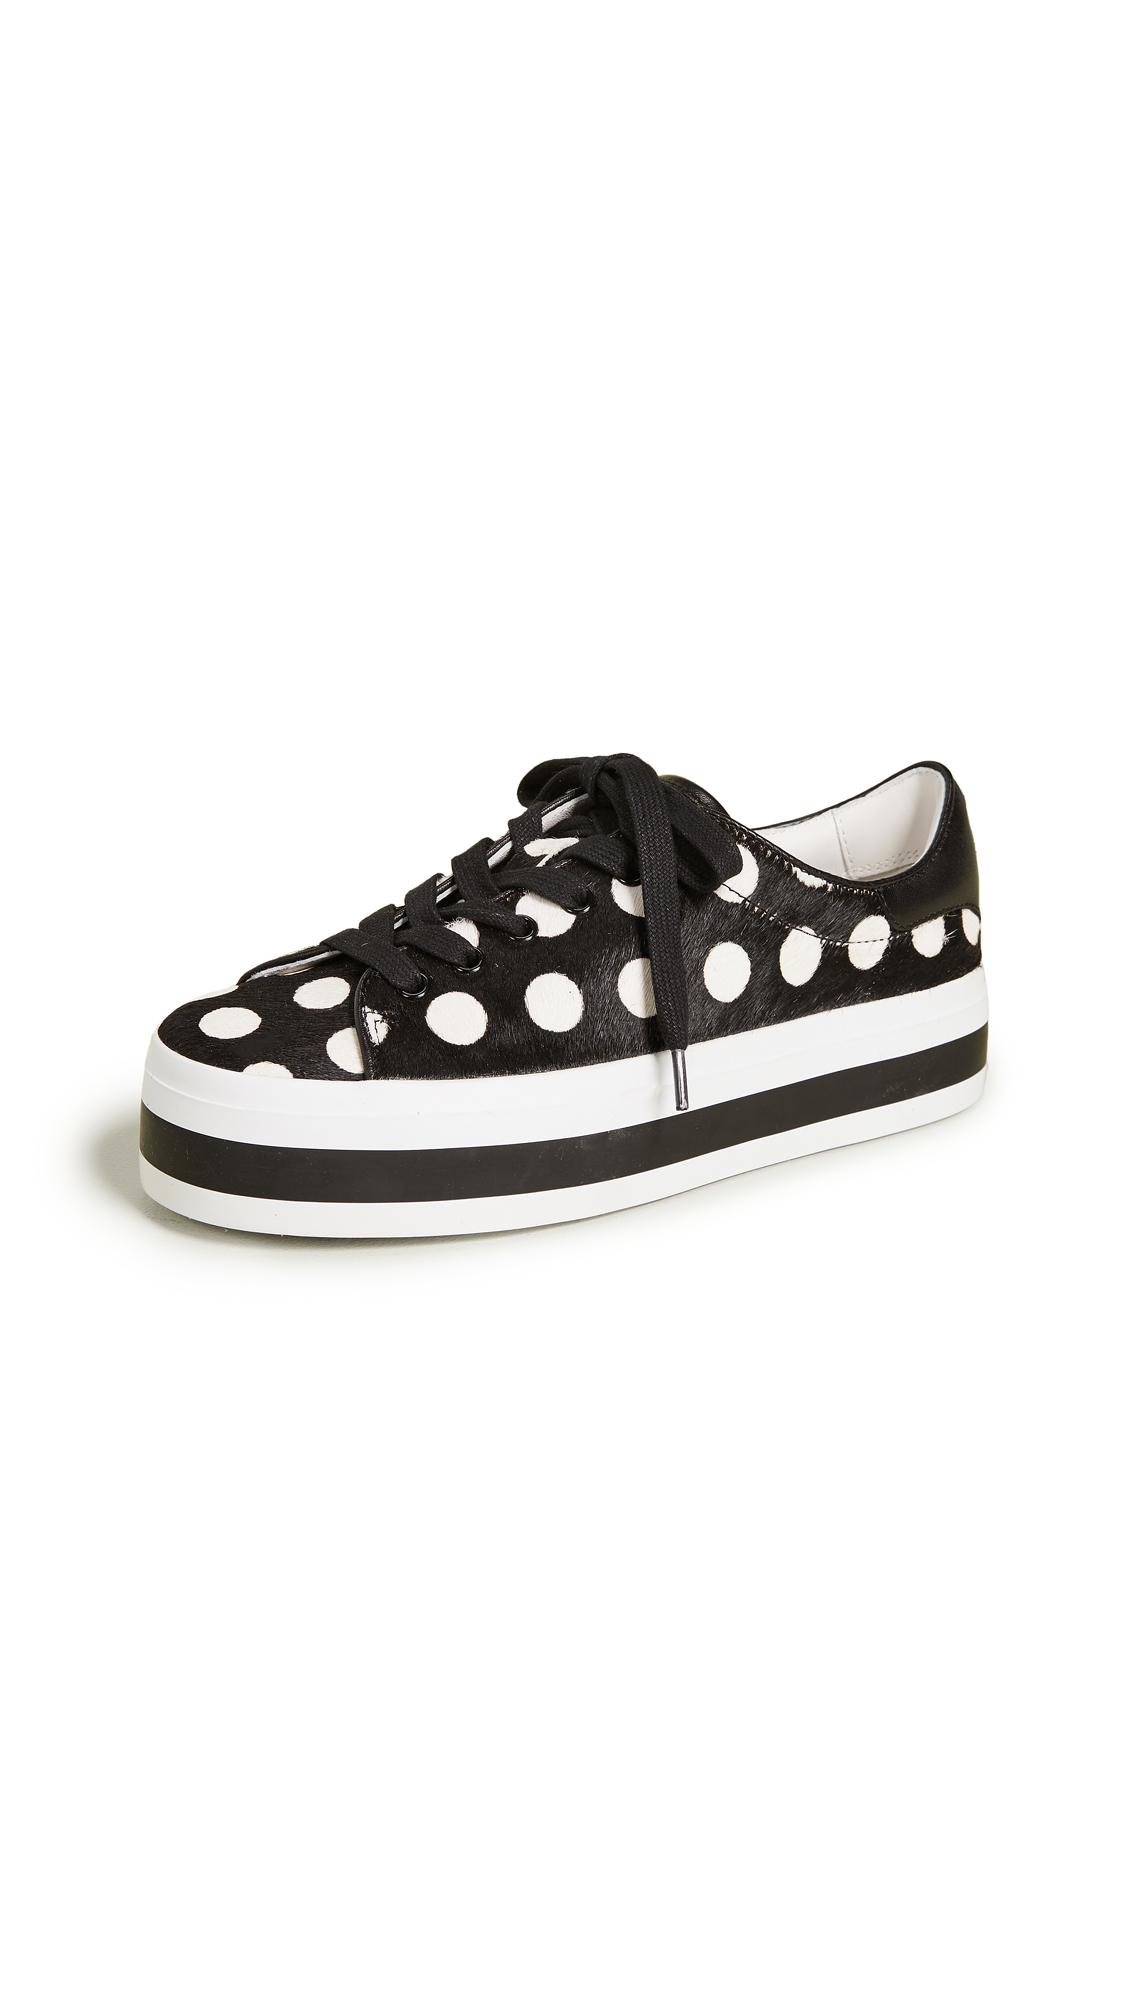 alice + olivia Ezra Sneakers - Black/White